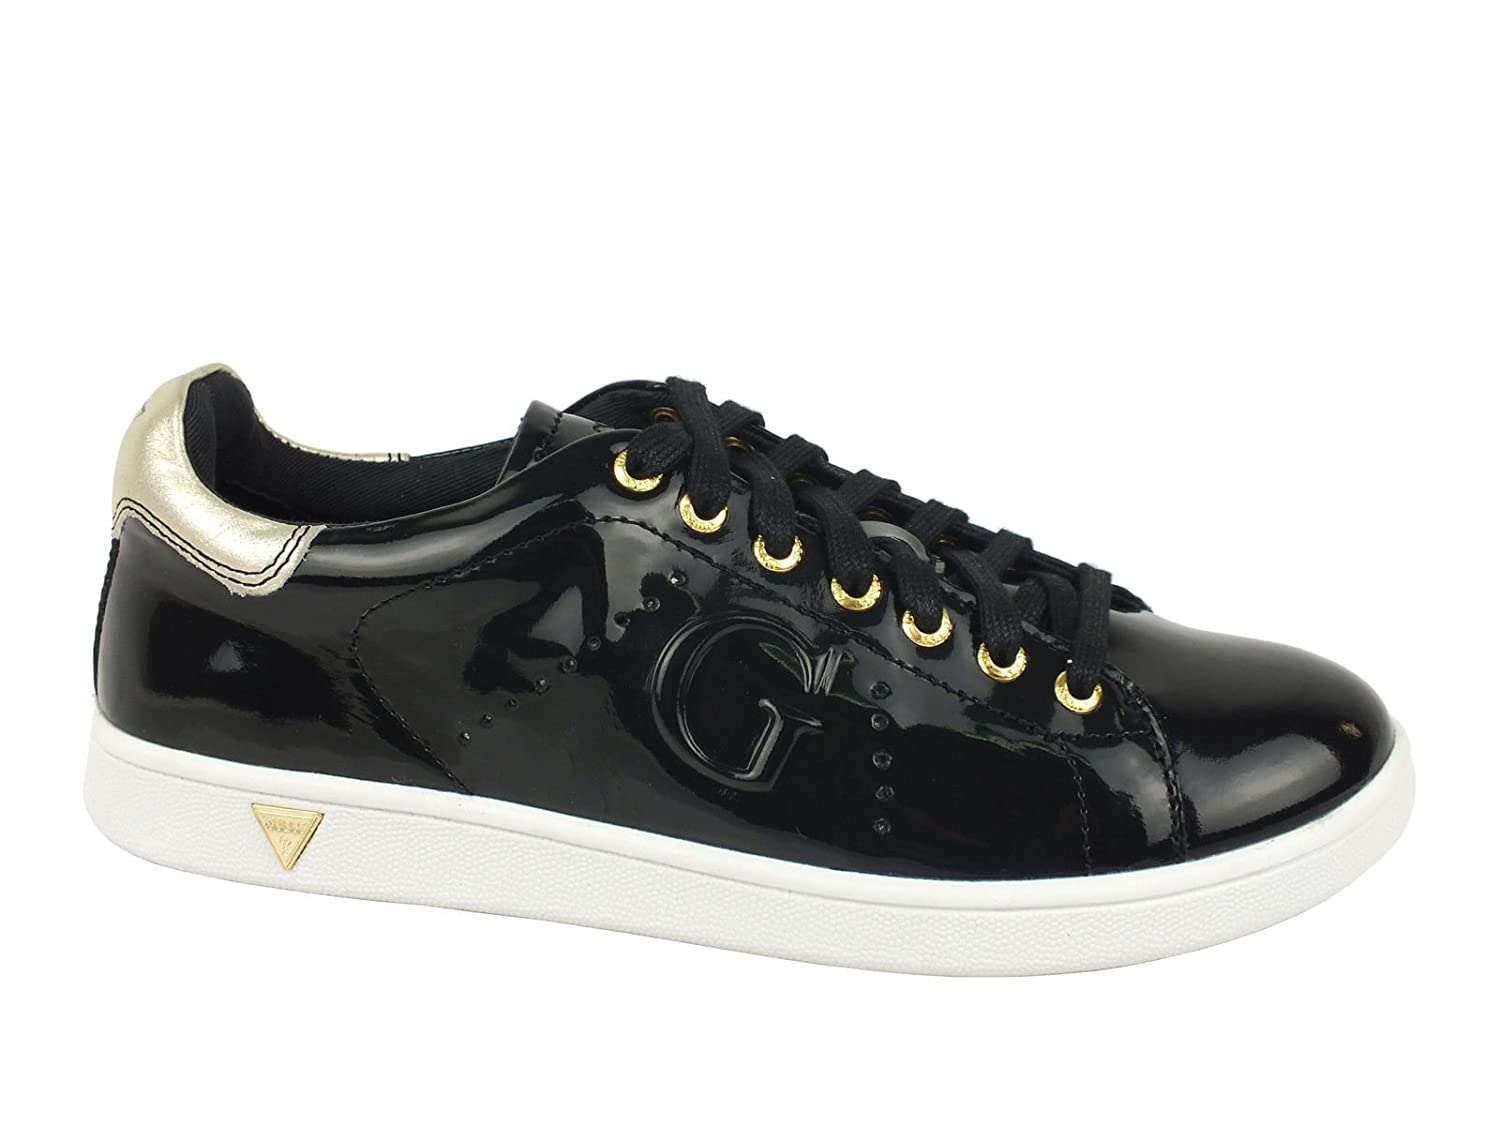 GUESS Super sneakers vernice donna PELLE BLACK NERO Tg.35: Amazon.it:  Scarpe e borse